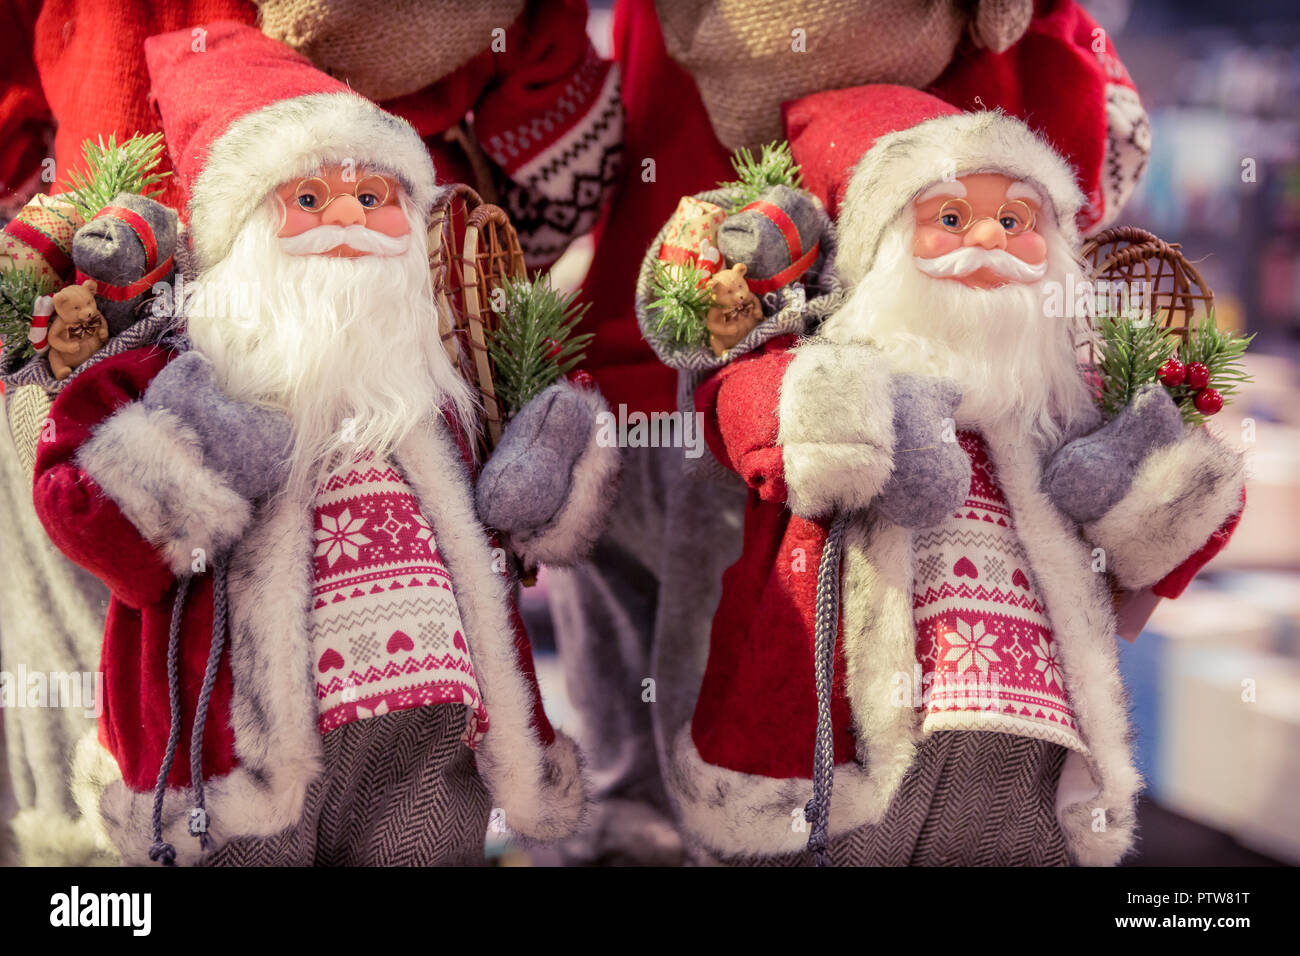 Christmas Decoration With Two Santa Claus Figurines Vintage Filter Effect